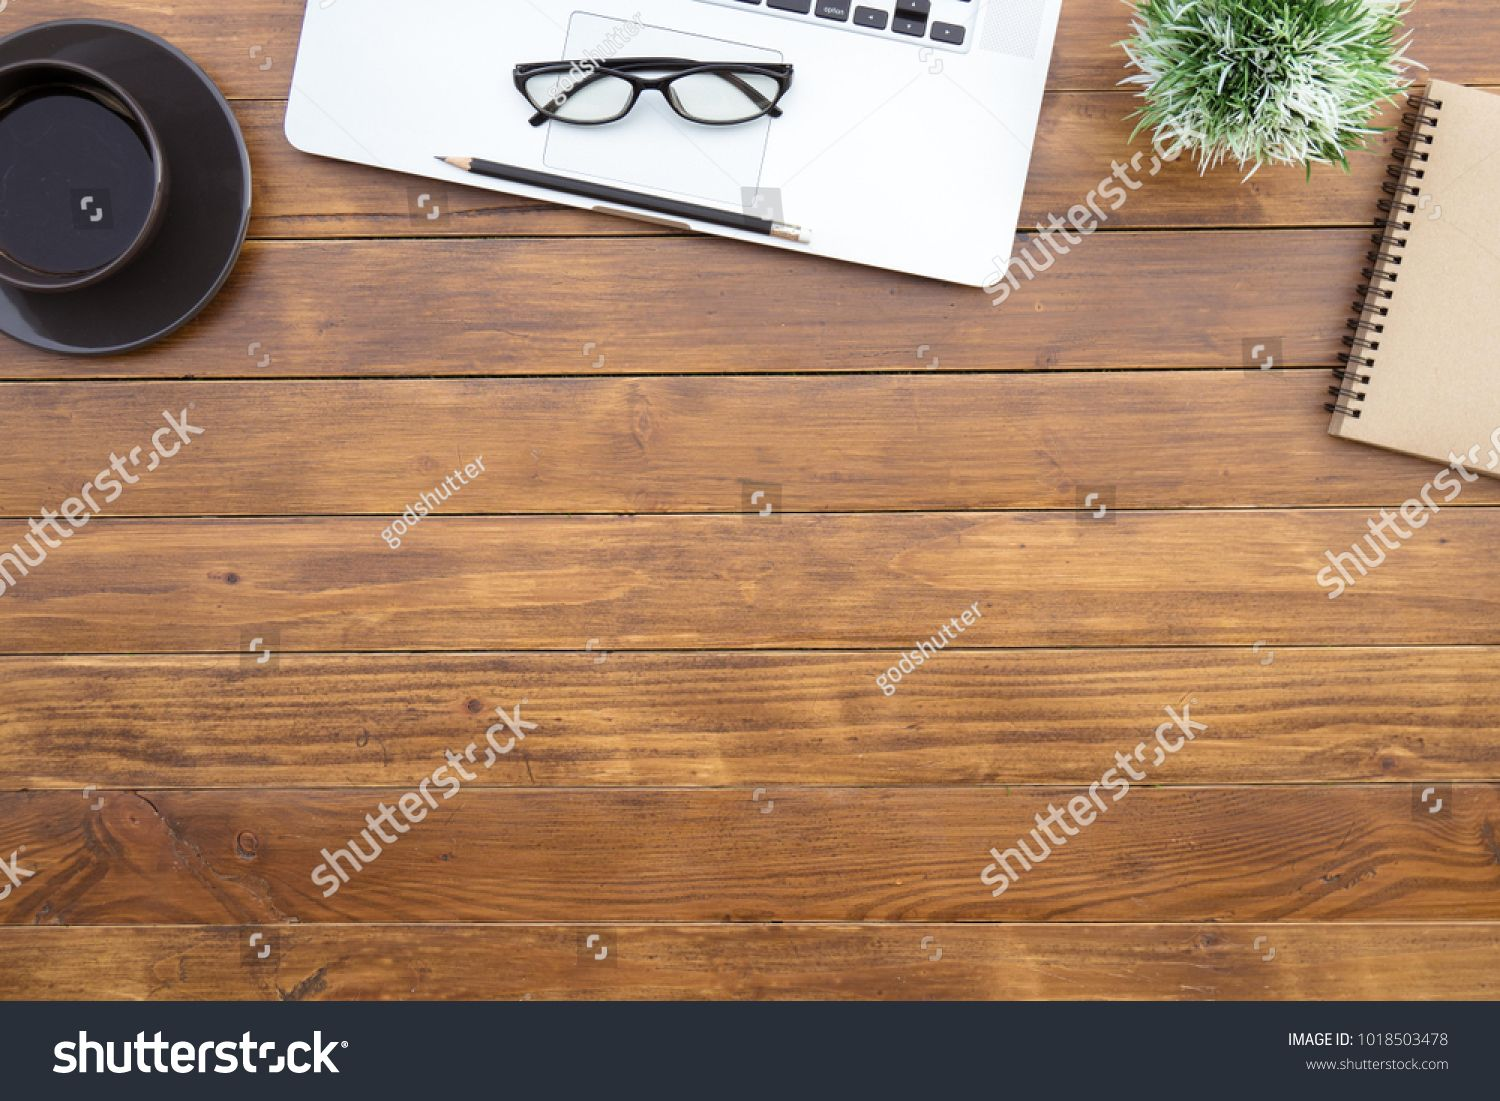 Flat Lay Of Top View Desk Work Table With Computer Laptop And